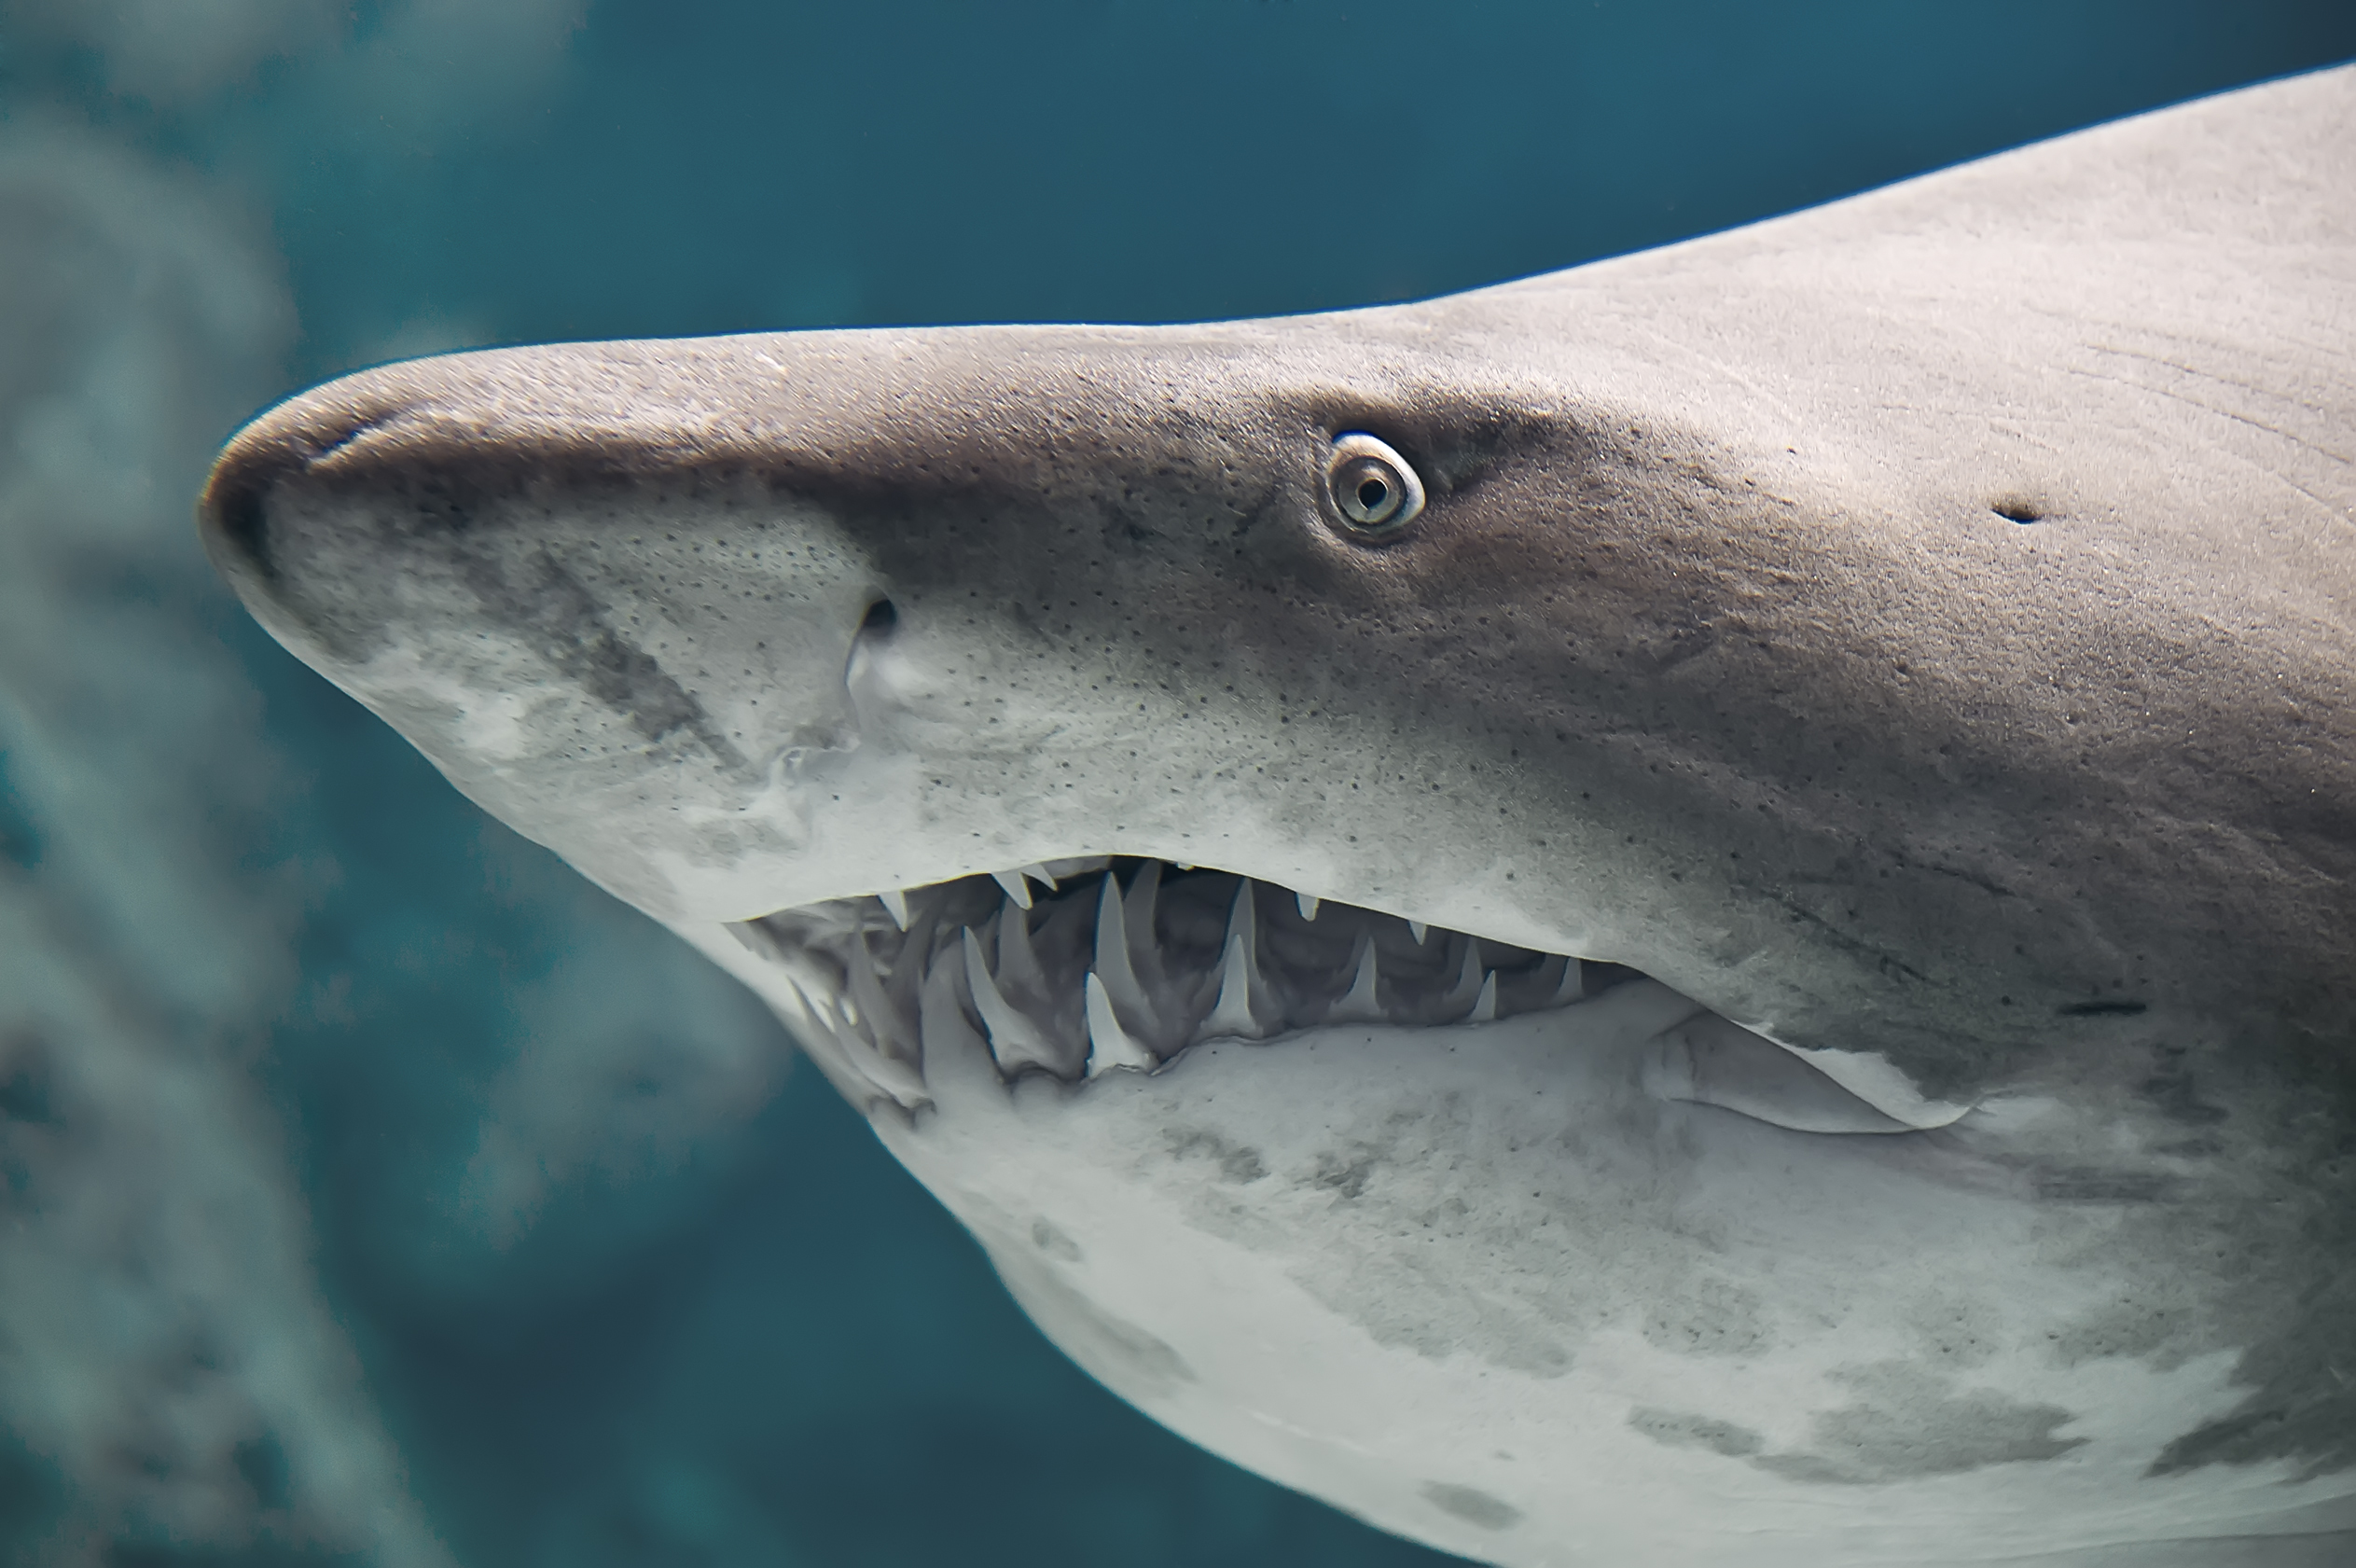 An average shark has 40-45 teeth in up to seven rows.